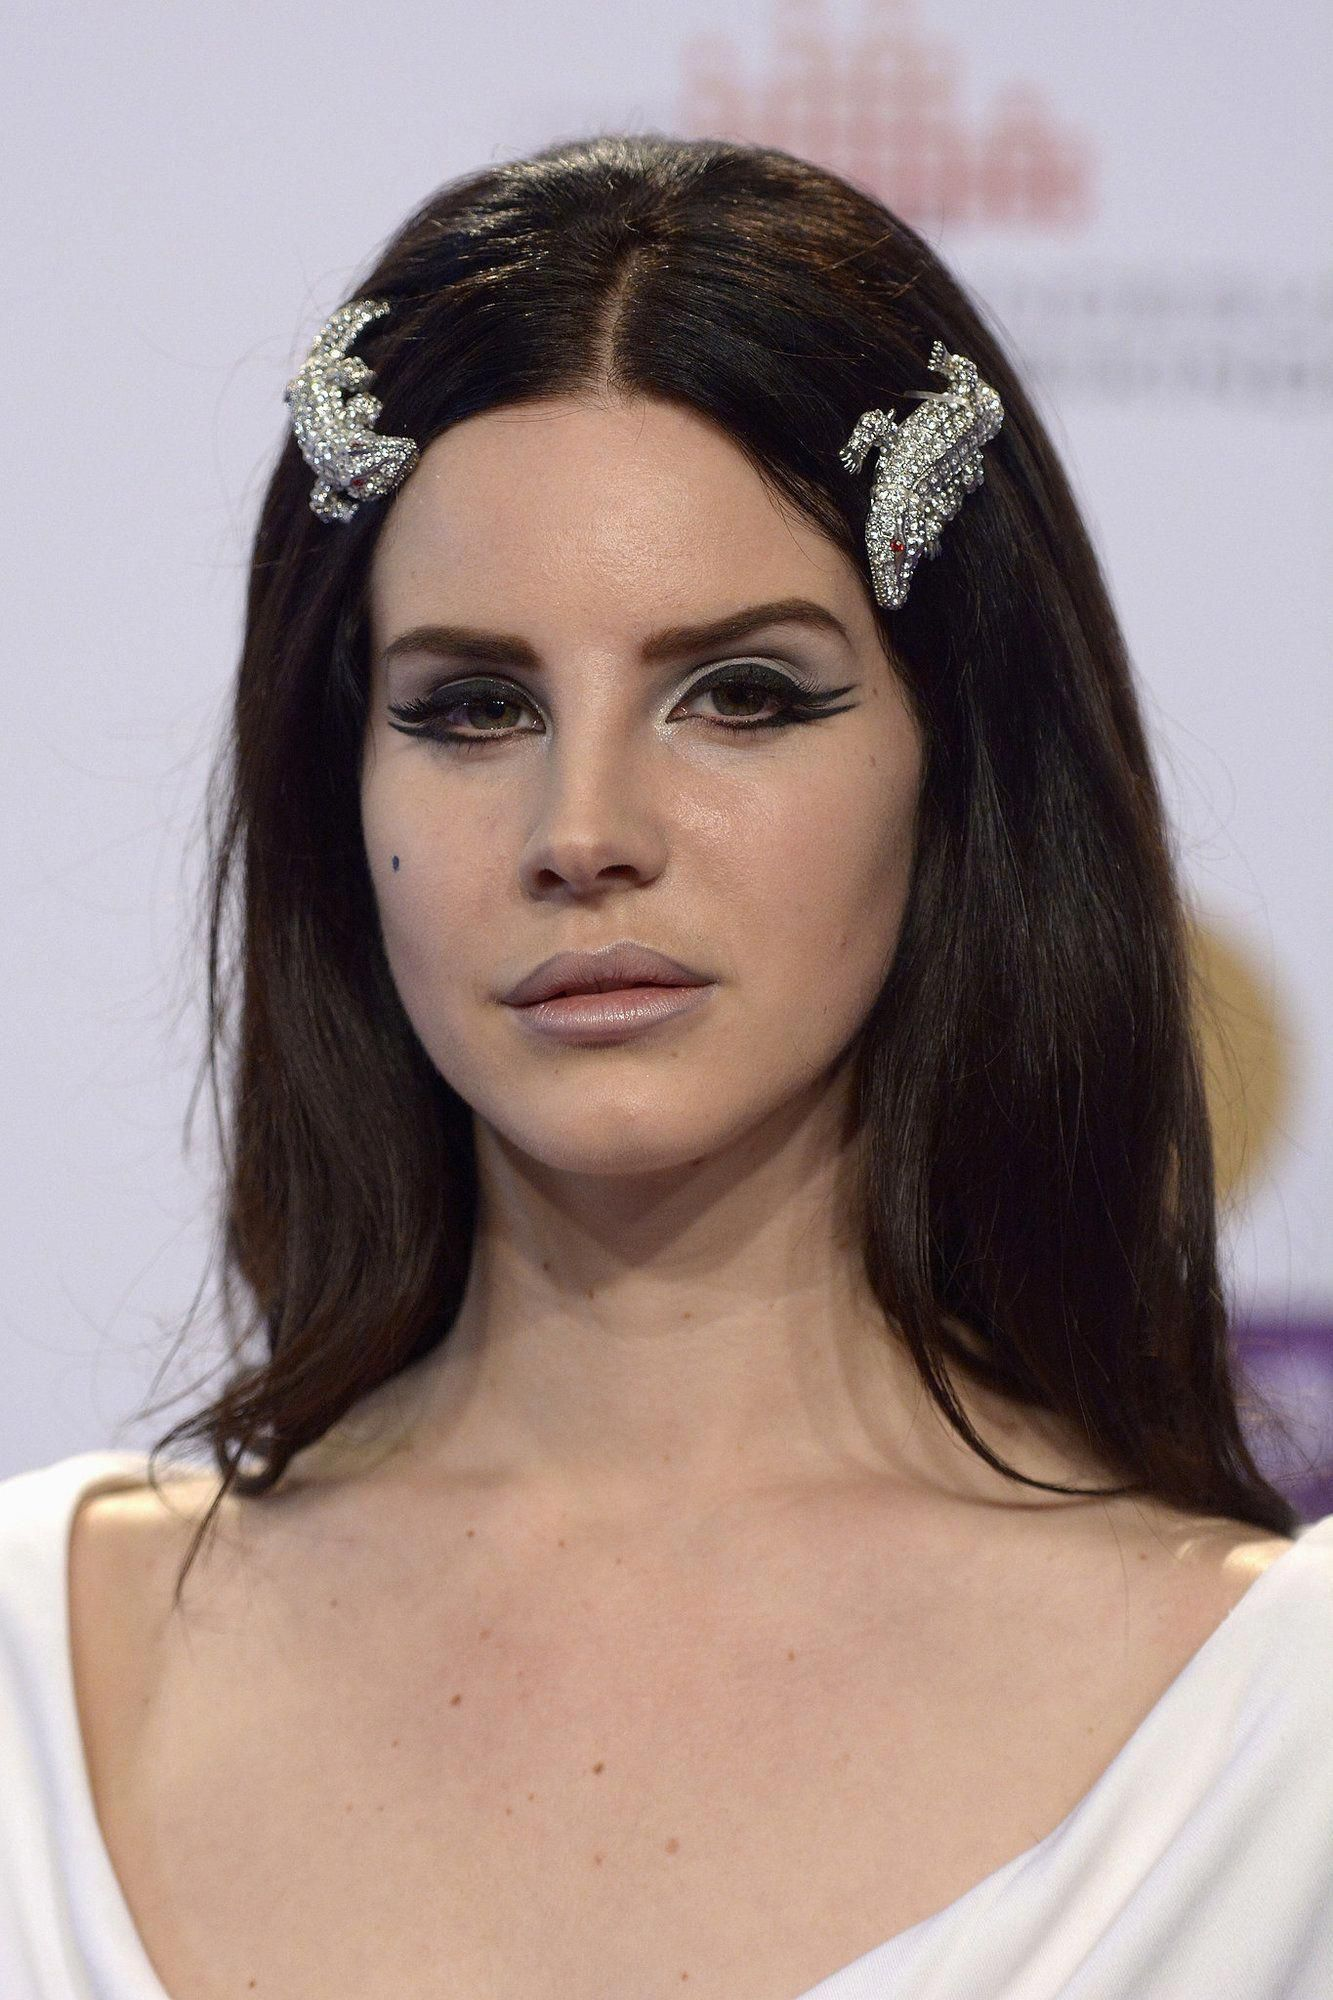 30 times Lana Del Rey slayed your life with her eyeliner